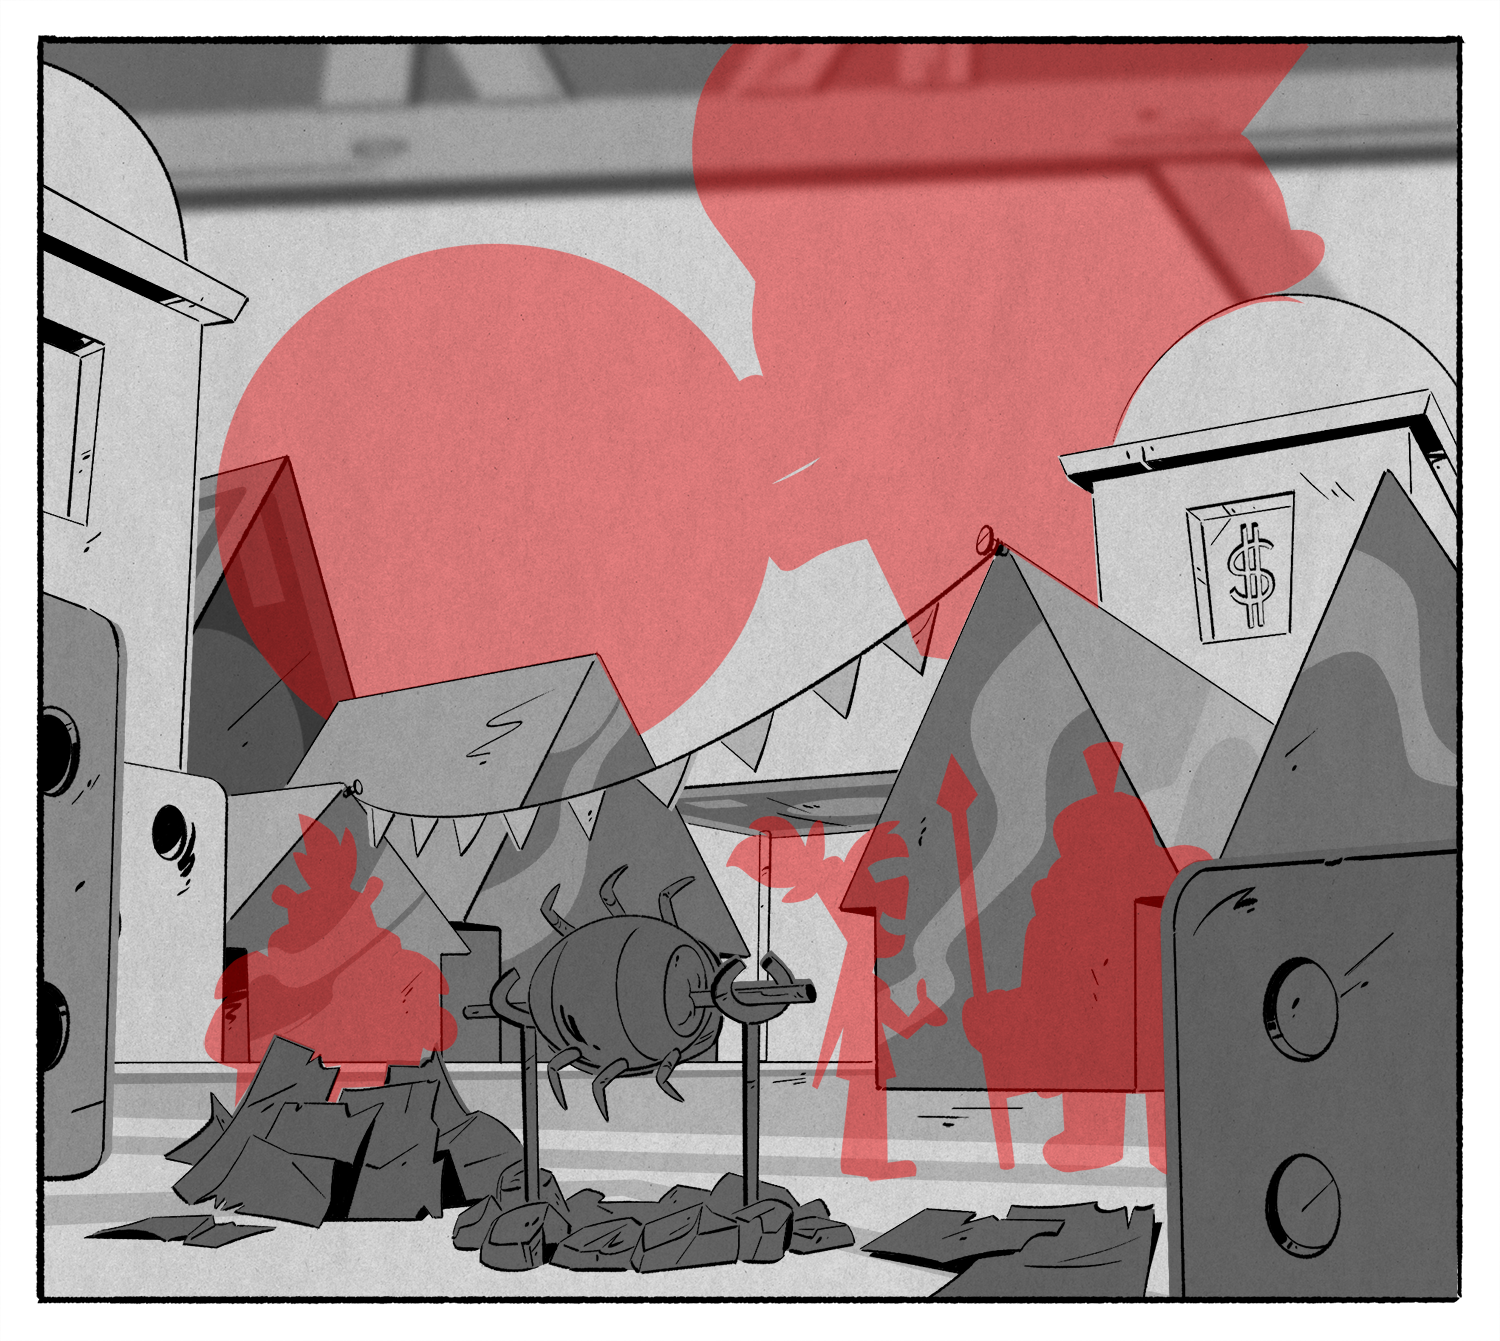 From Episode 1,  The Most Dangerous Game… Night!  The characters ended up making a little teeny town out of the board game pieces. It was fun thinking this through, like using shreds of the board game money as kindle for fire.